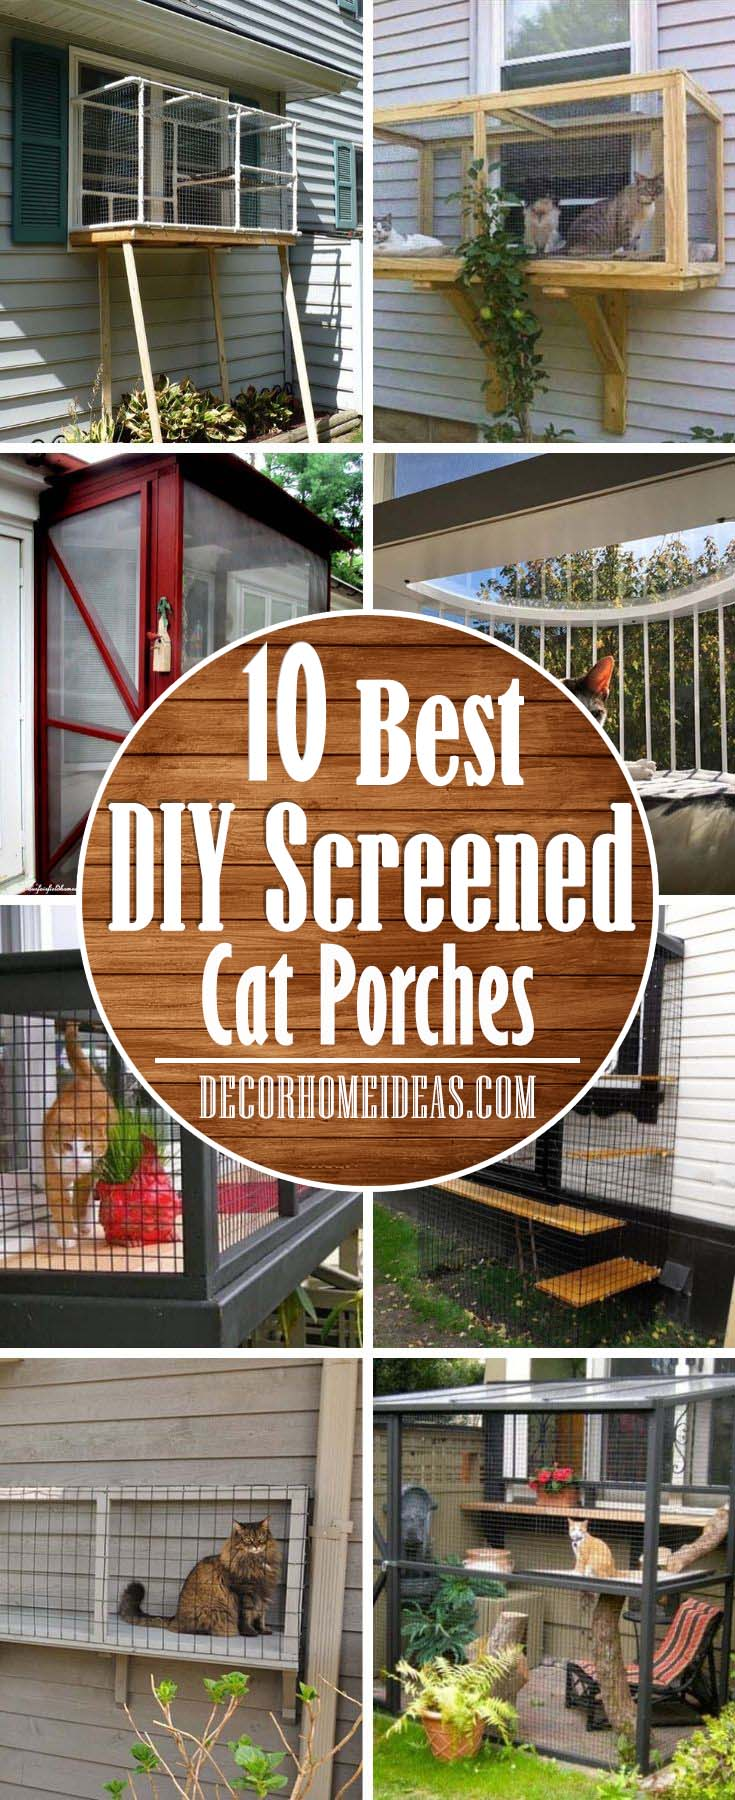 DIY Cat Screened Porch. Screened Cat Porches are a great way to keep your kitty safe, all the while enjoying the fresh air and the great outdoors. #cat #homedecor #porch #decorhomeideas